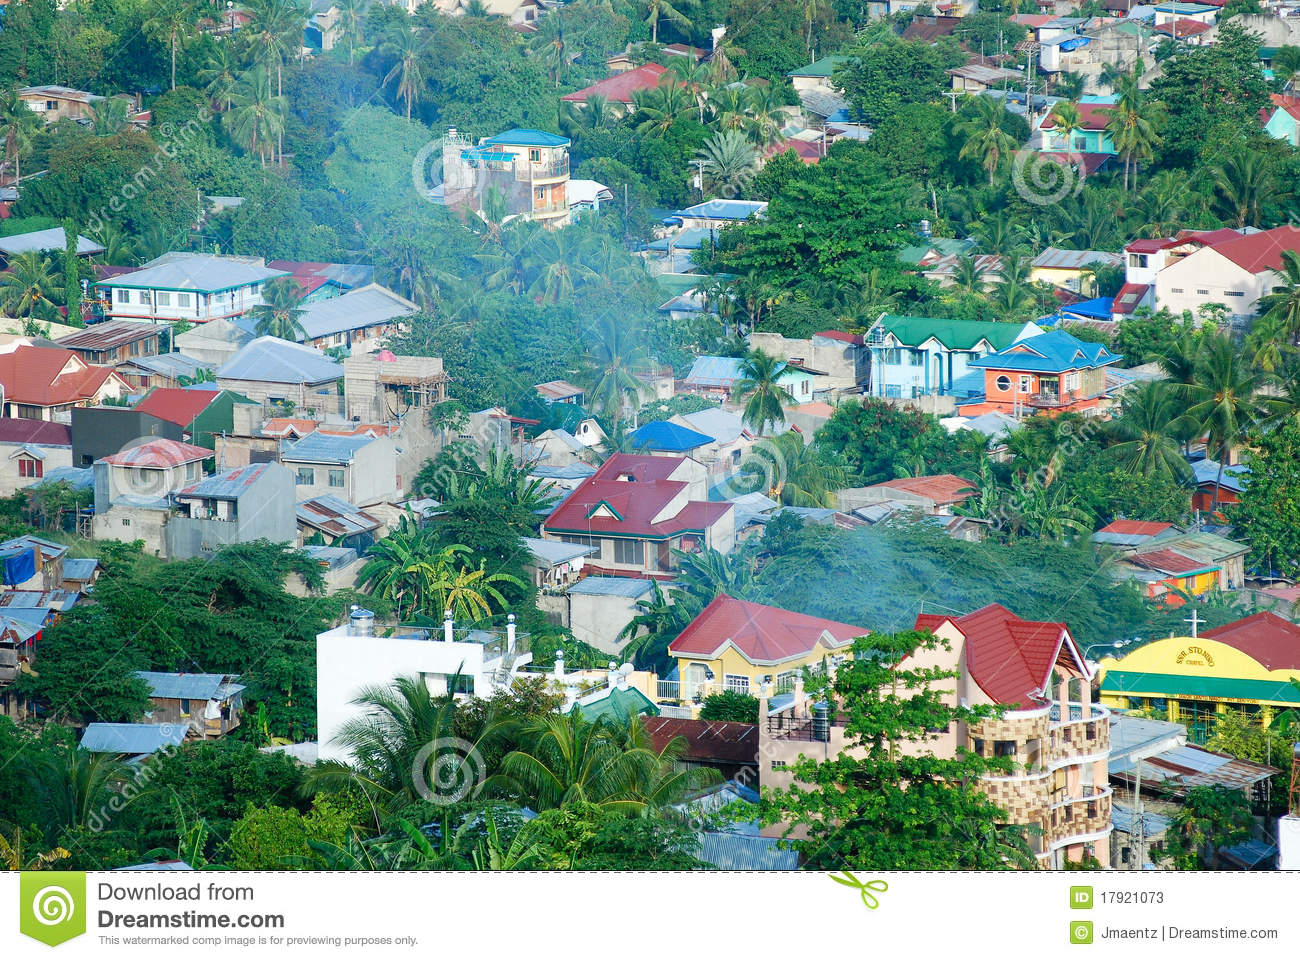 Aerial view of a residential neighborhood